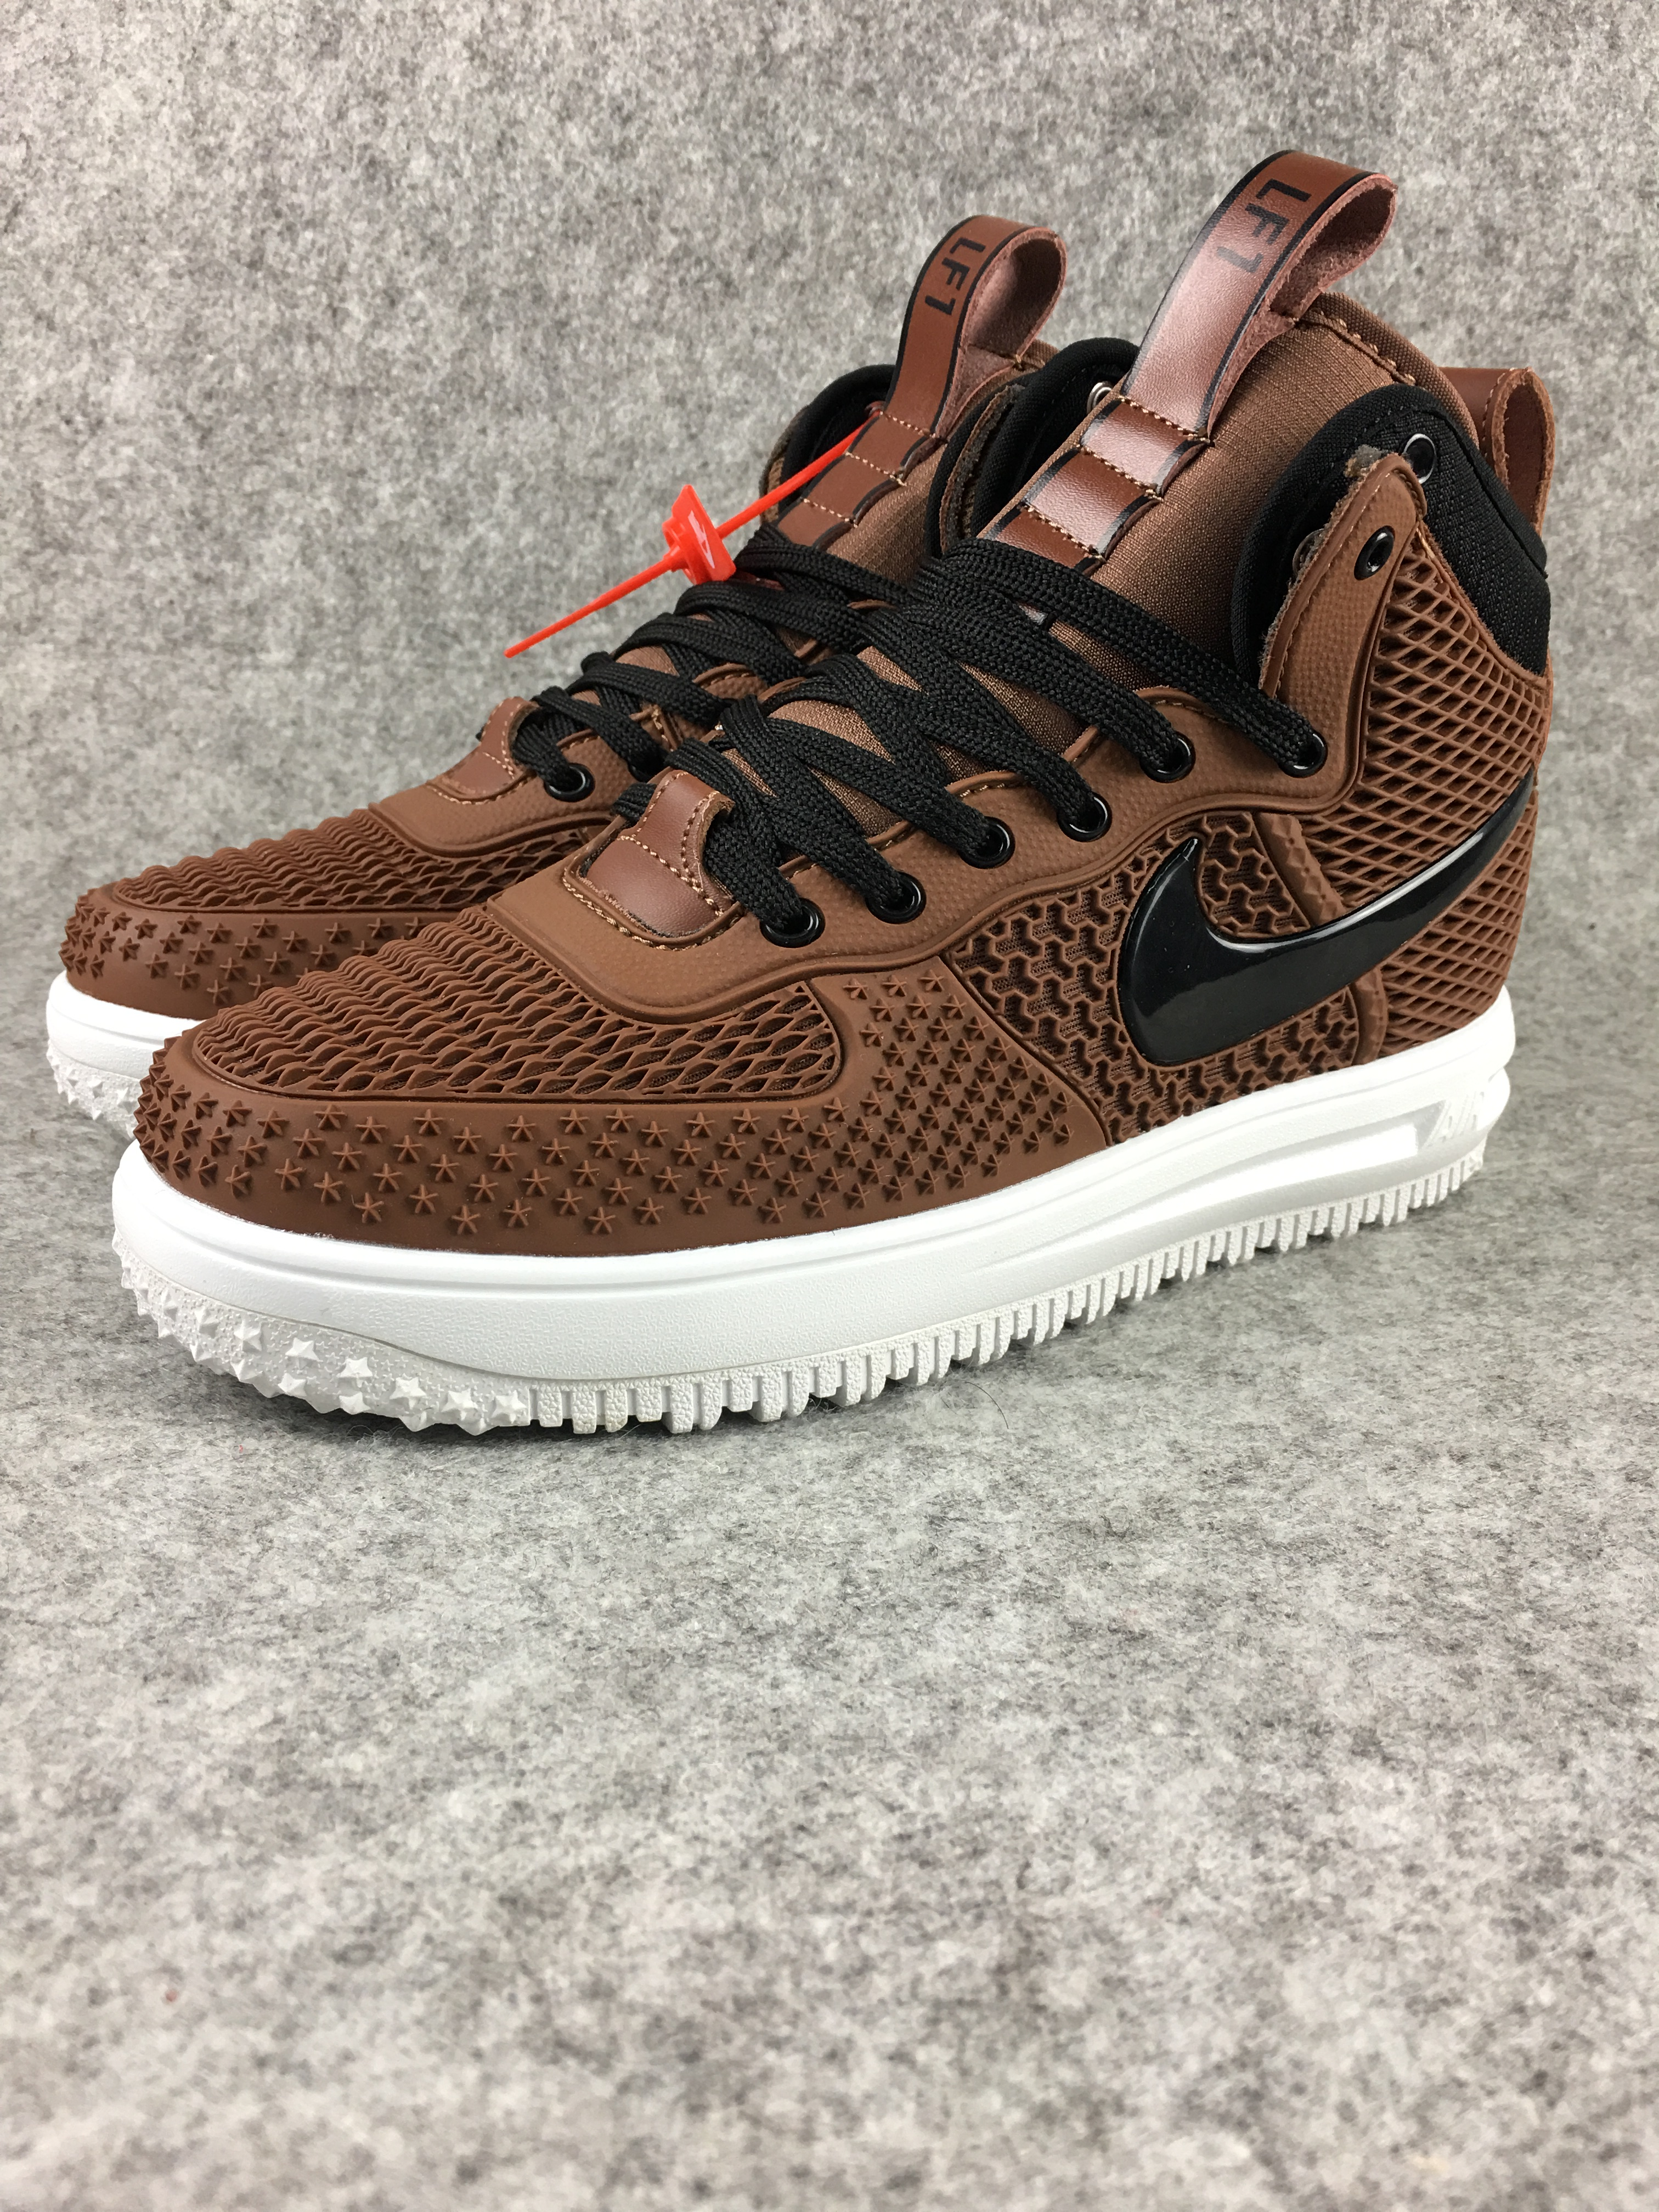 Nike Lunar Force 1 Nano Brown Black Shoes